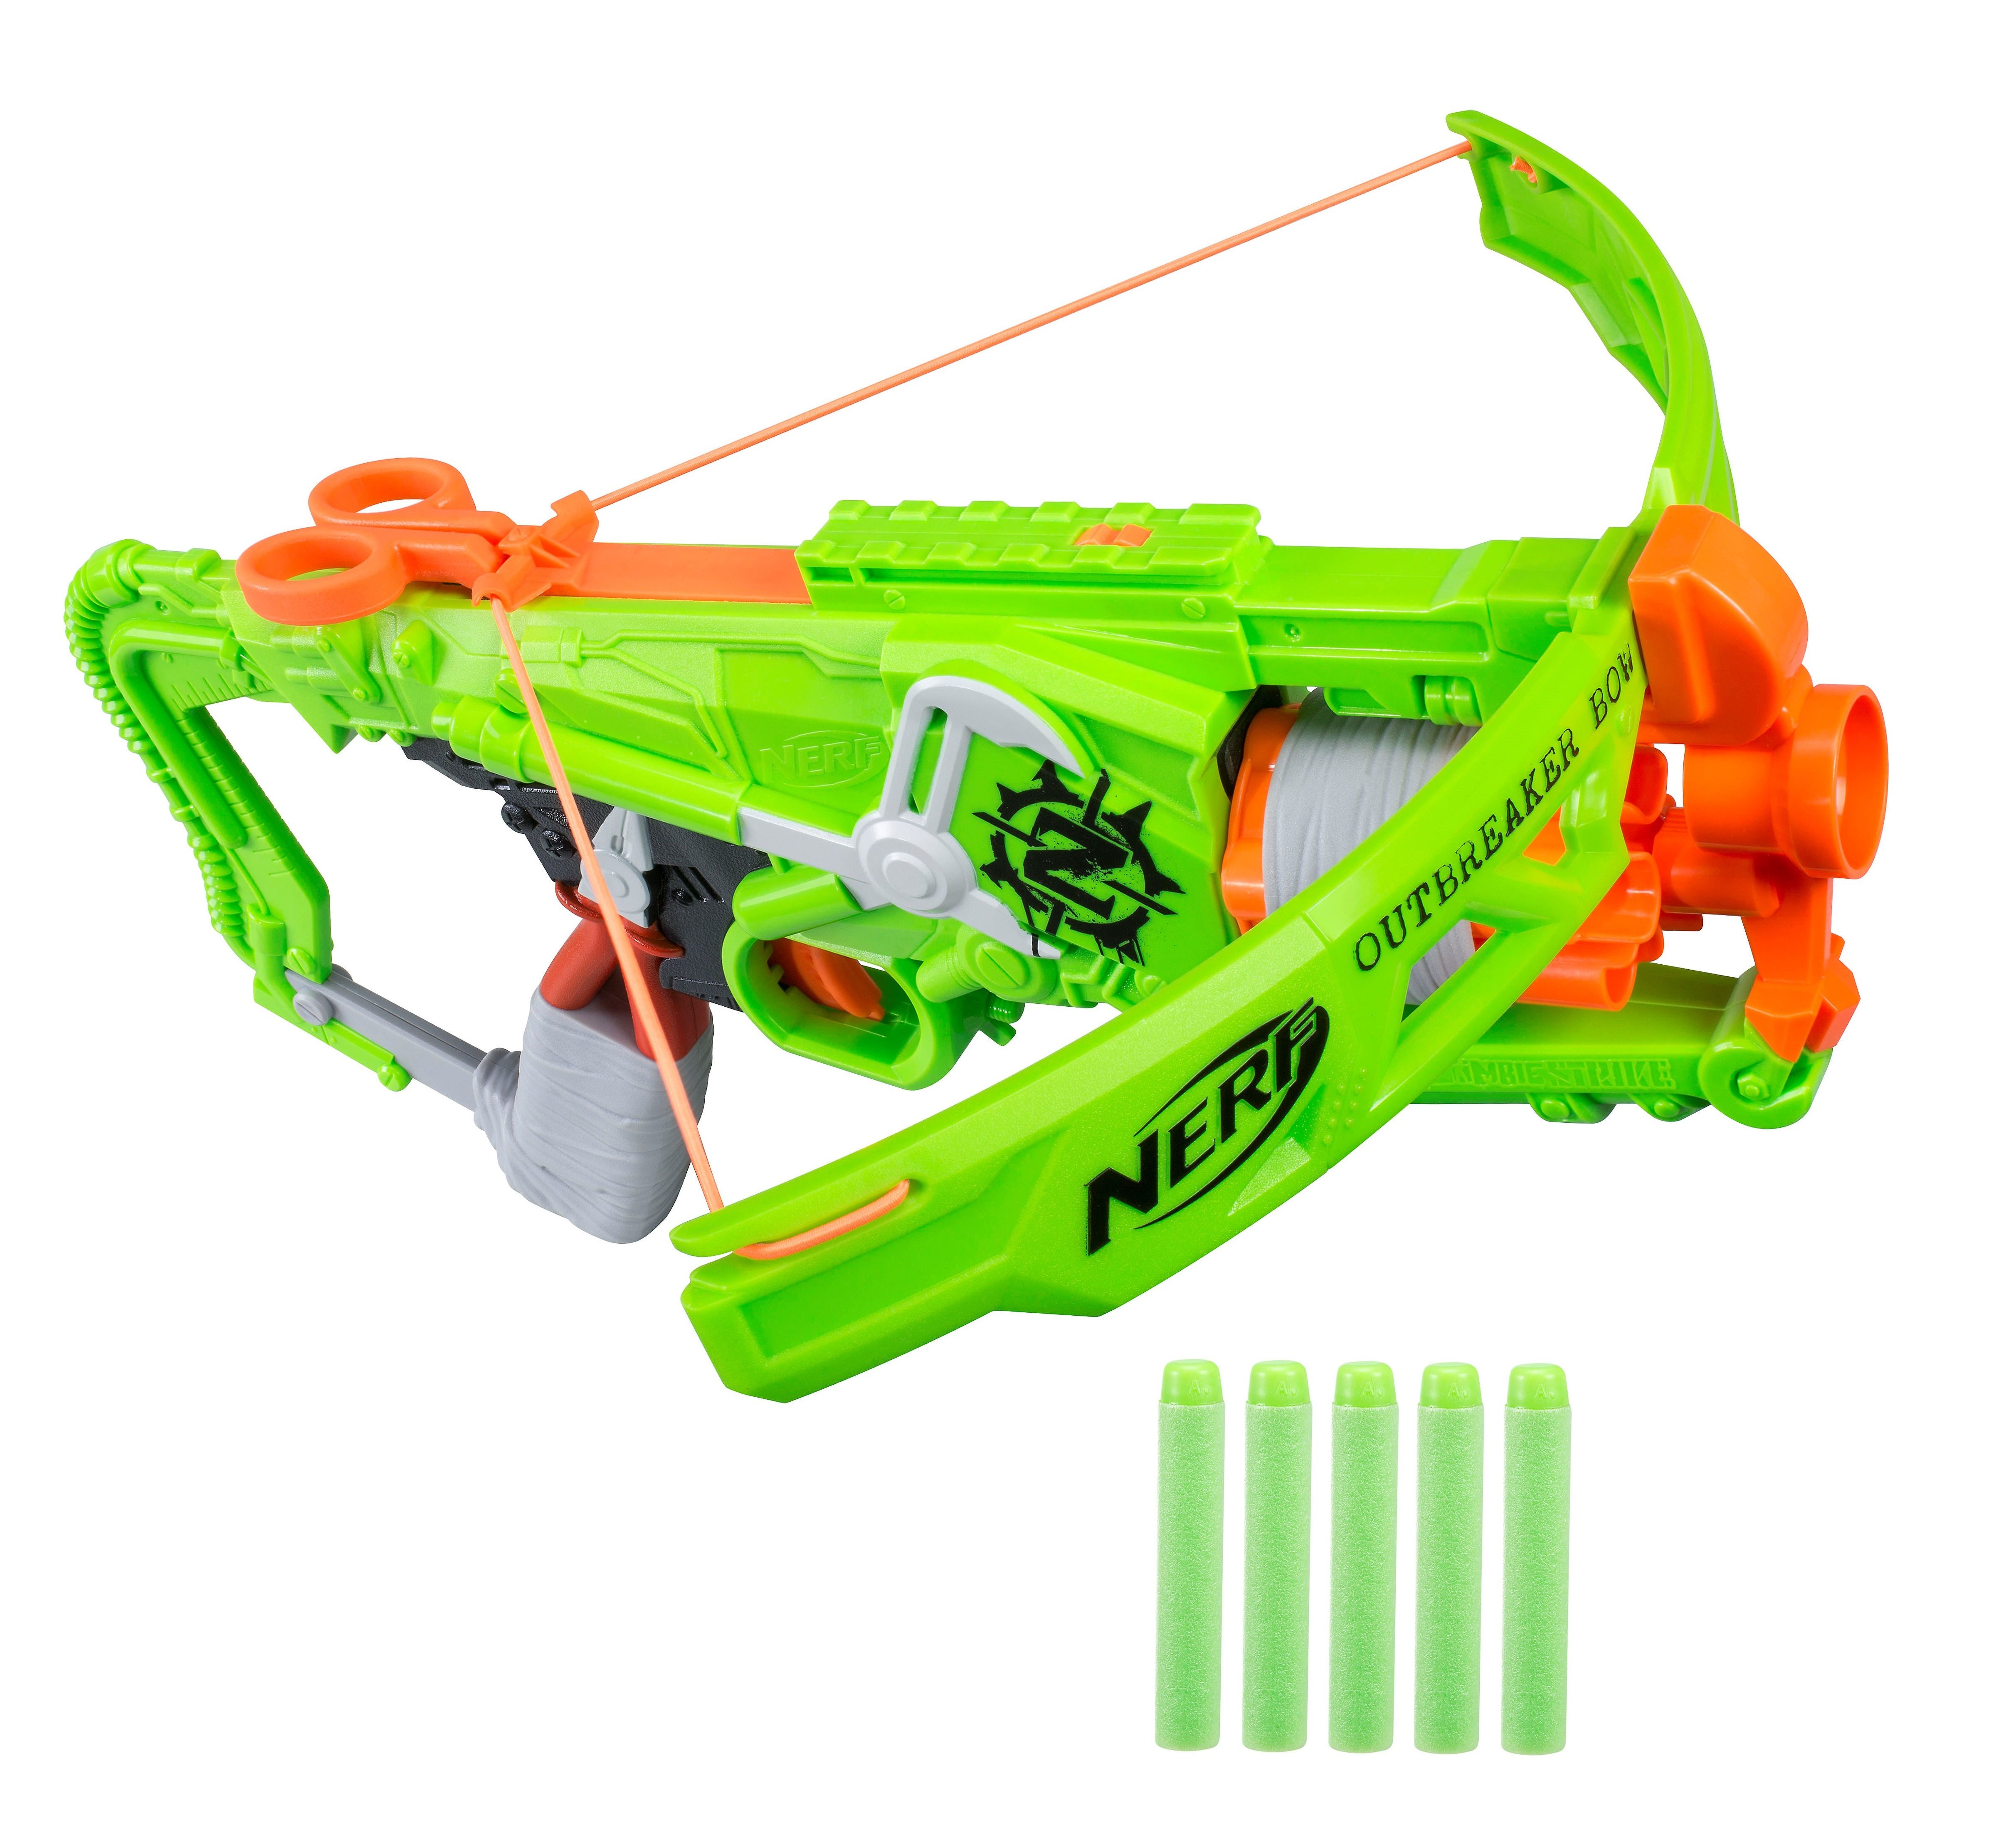 Nerf Spring 17 Official Product Details Blaster Hub